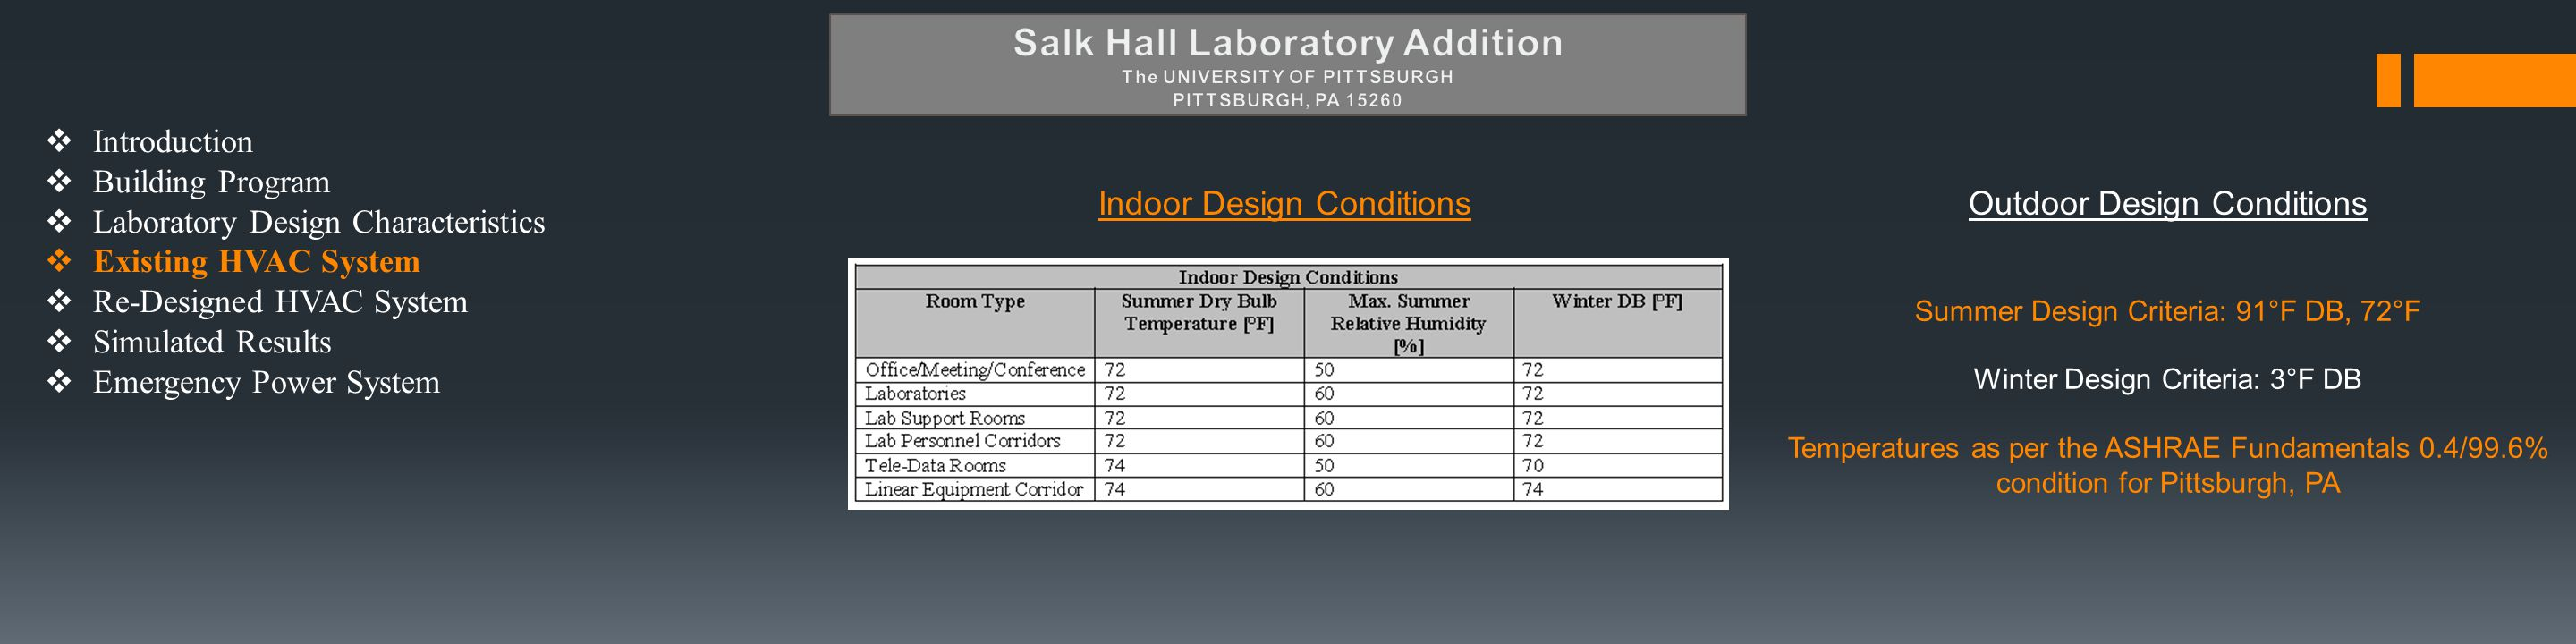  Introduction  Building Program  Laboratory Design Characteristics  Existing HVAC System  Re-Designed HVAC System  Simulated Results  Emergency Power System Indoor Design ConditionsOutdoor Design Conditions Summer Design Criteria: 91°F DB, 72°F Winter Design Criteria: 3°F DB Temperatures as per the ASHRAE Fundamentals 0.4/99.6% condition for Pittsburgh, PA